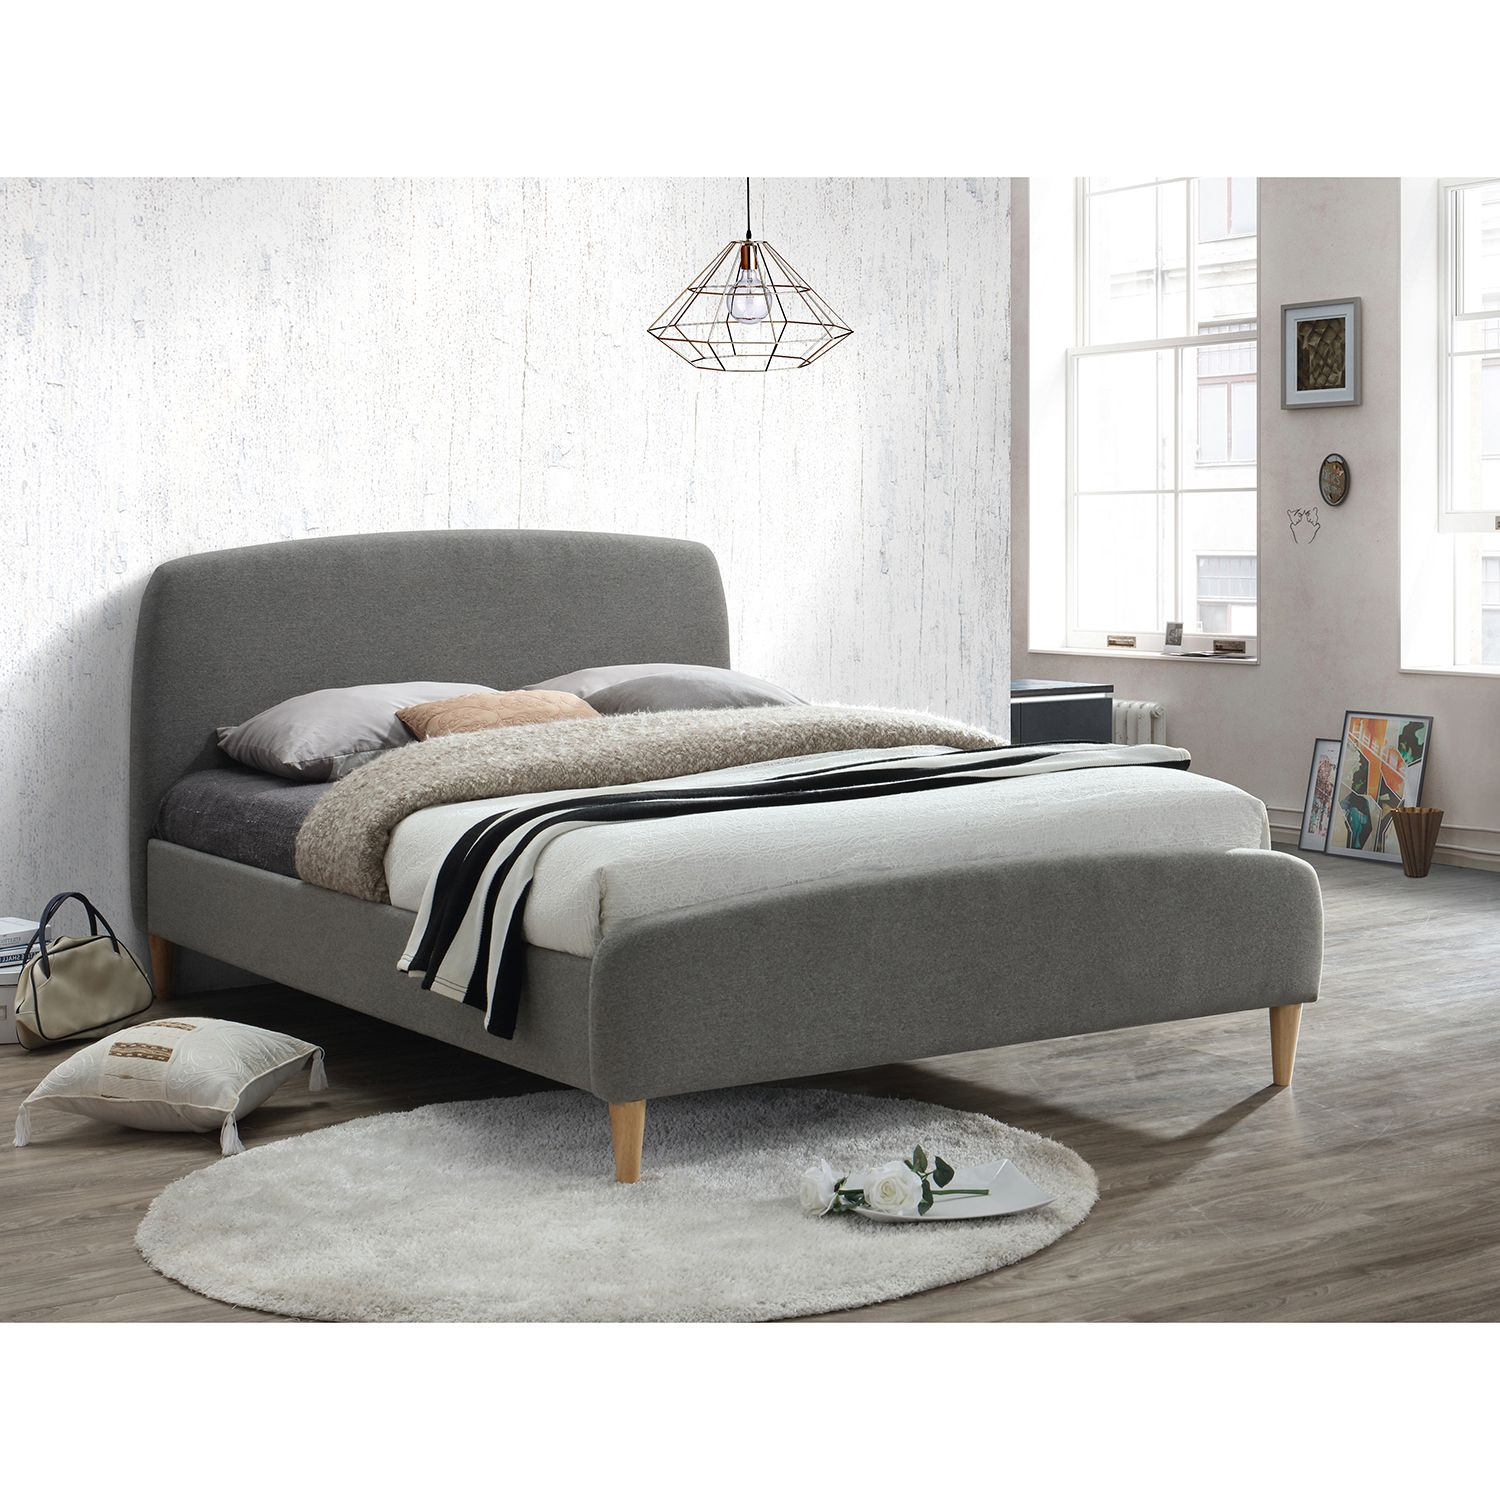 quebec fabric bed frame mattress dimensions bed frames and spare room